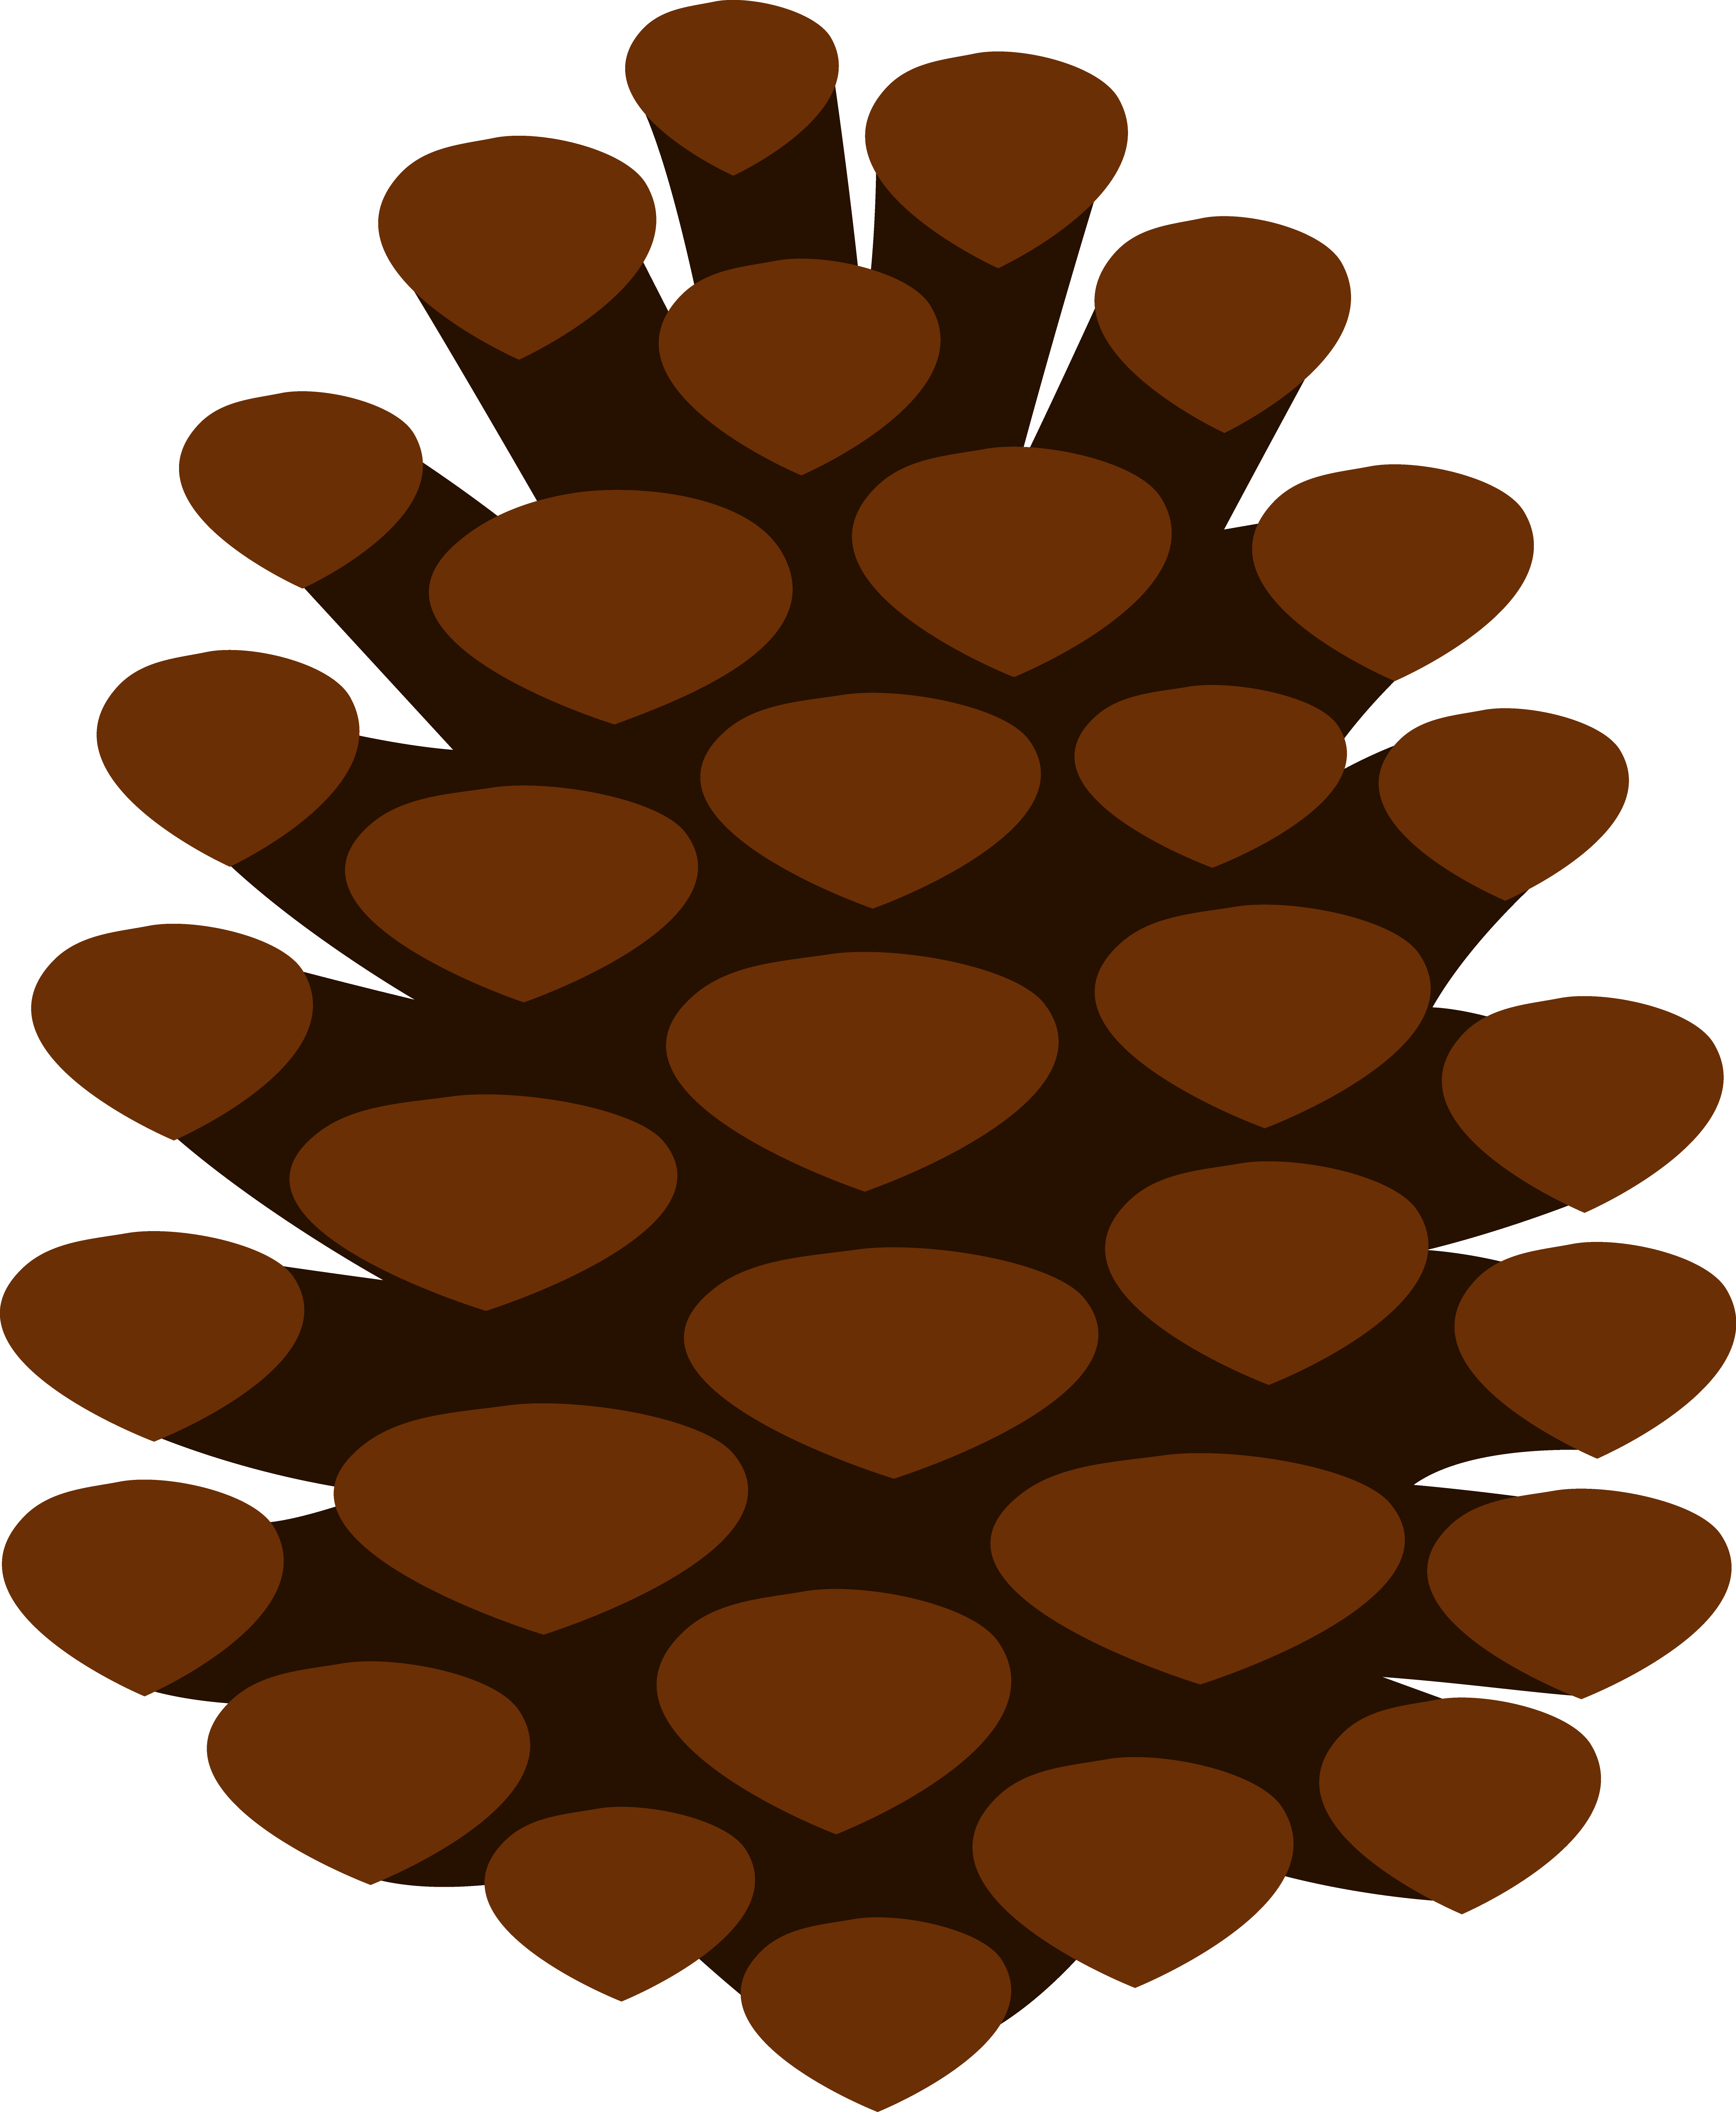 Pine Cone clipart #4, Download drawings